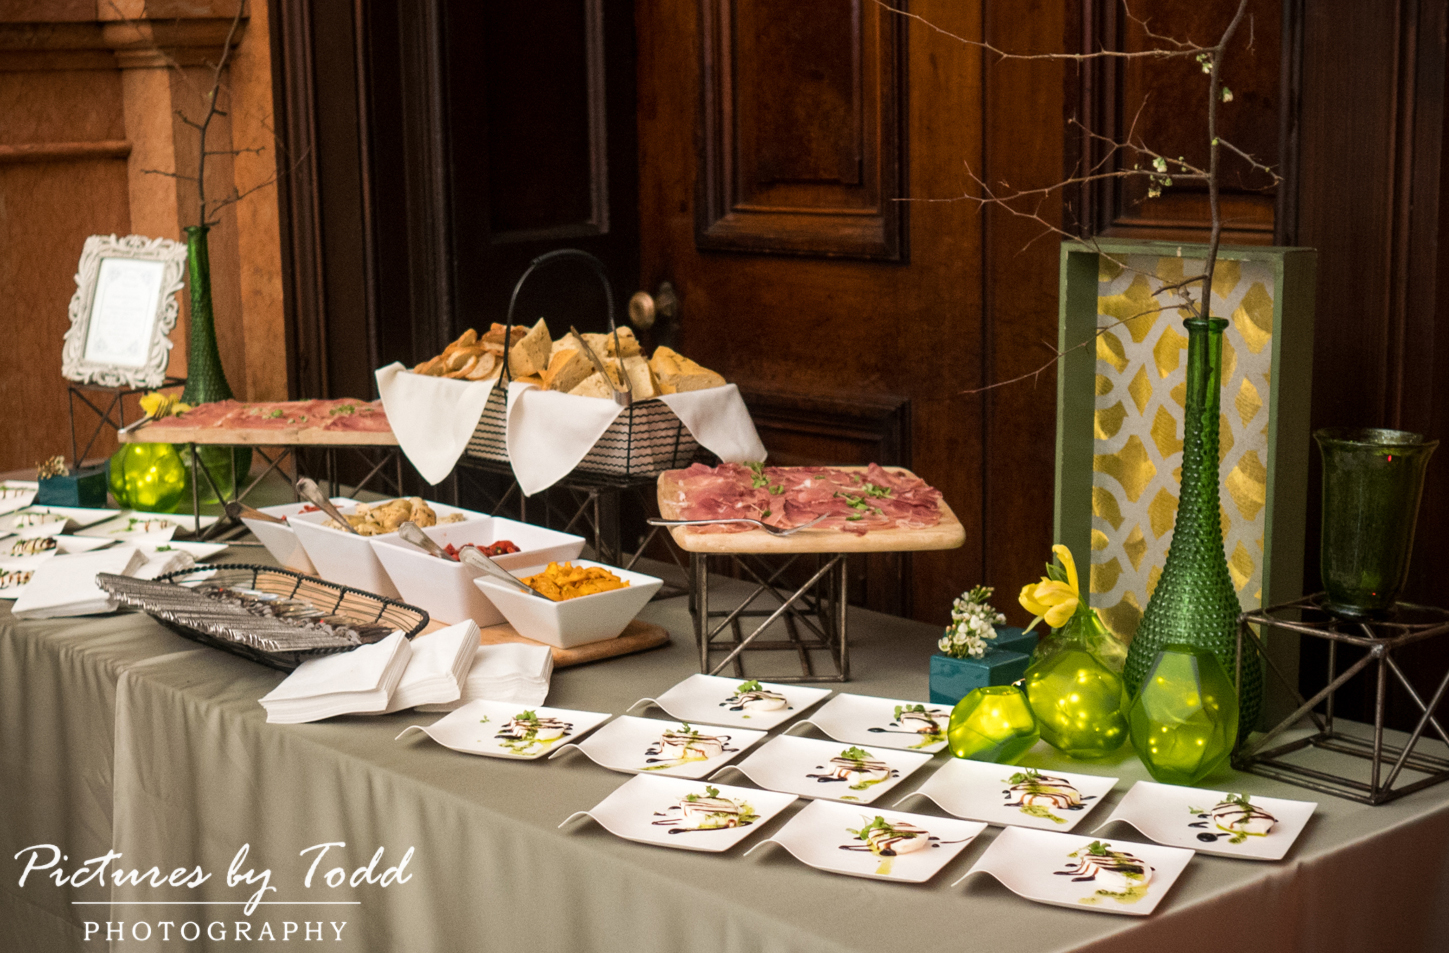 One North Broad Street Venue Opening House by Catering By Design and Garnish of Philadelphia, A High End Venue Like No Other of The City of Philadelphia.